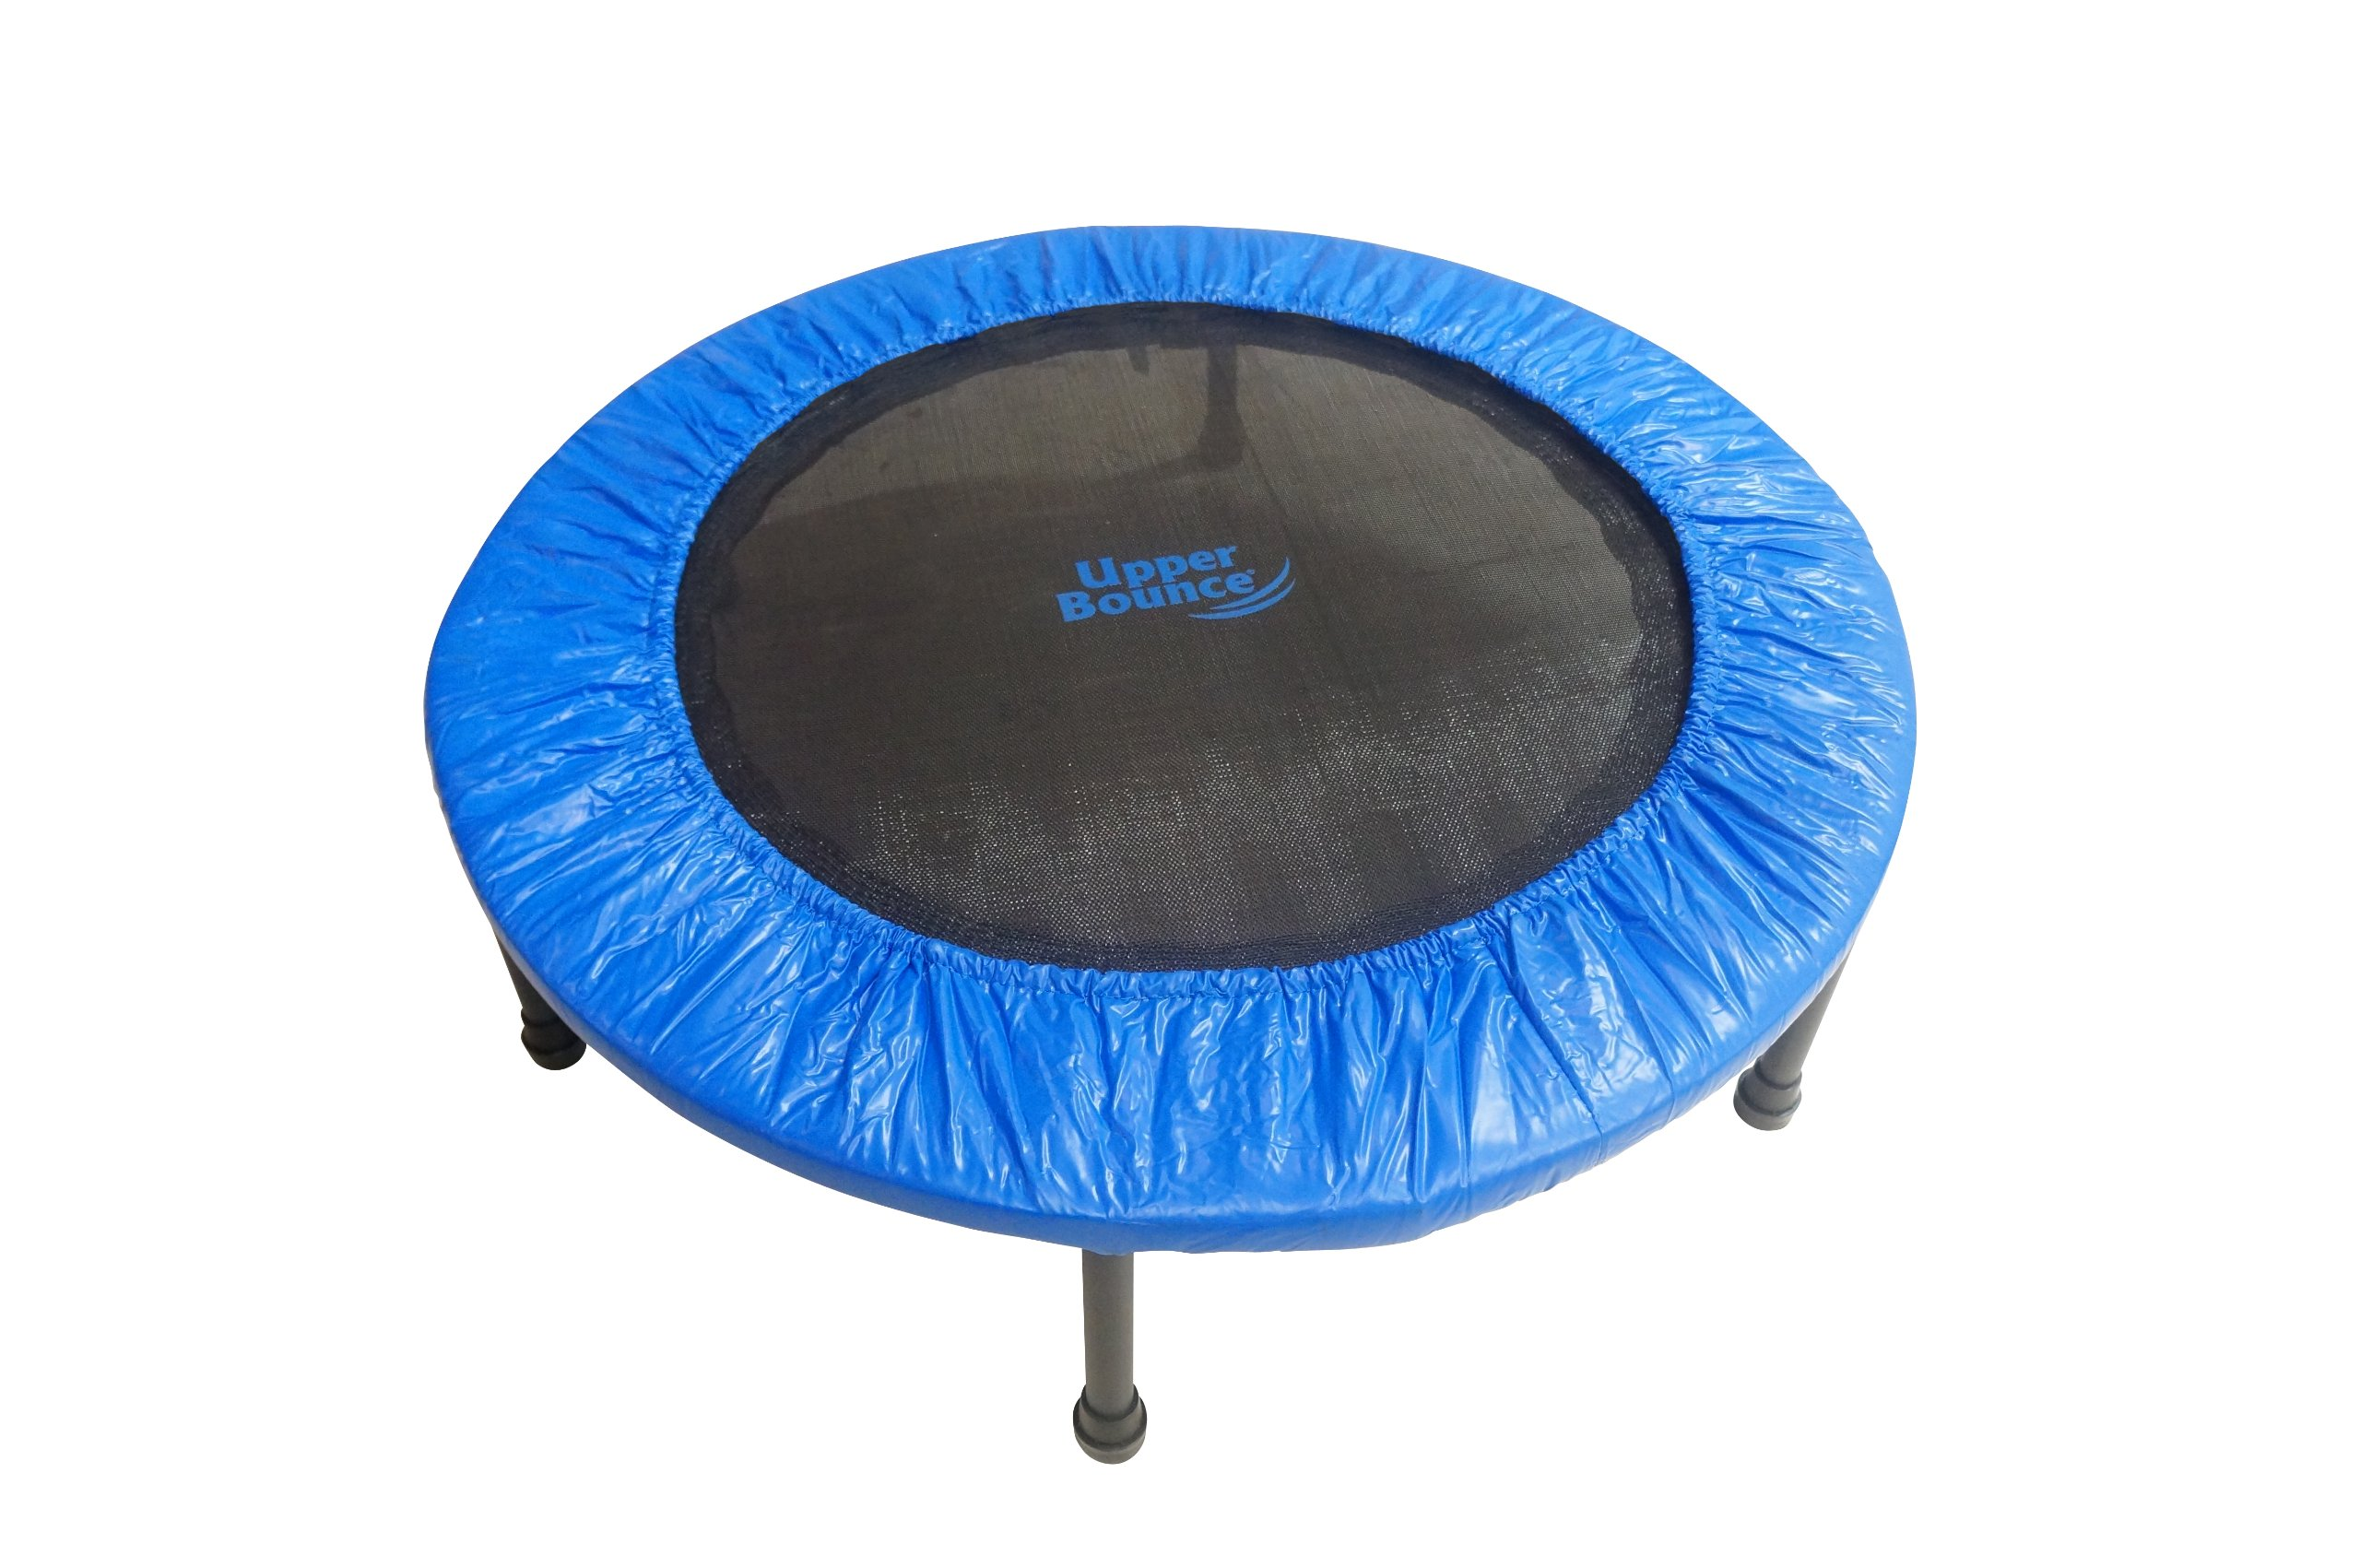 36'' Two-Way Foldable Rebounder Trampoline with Carry-on Bag Included